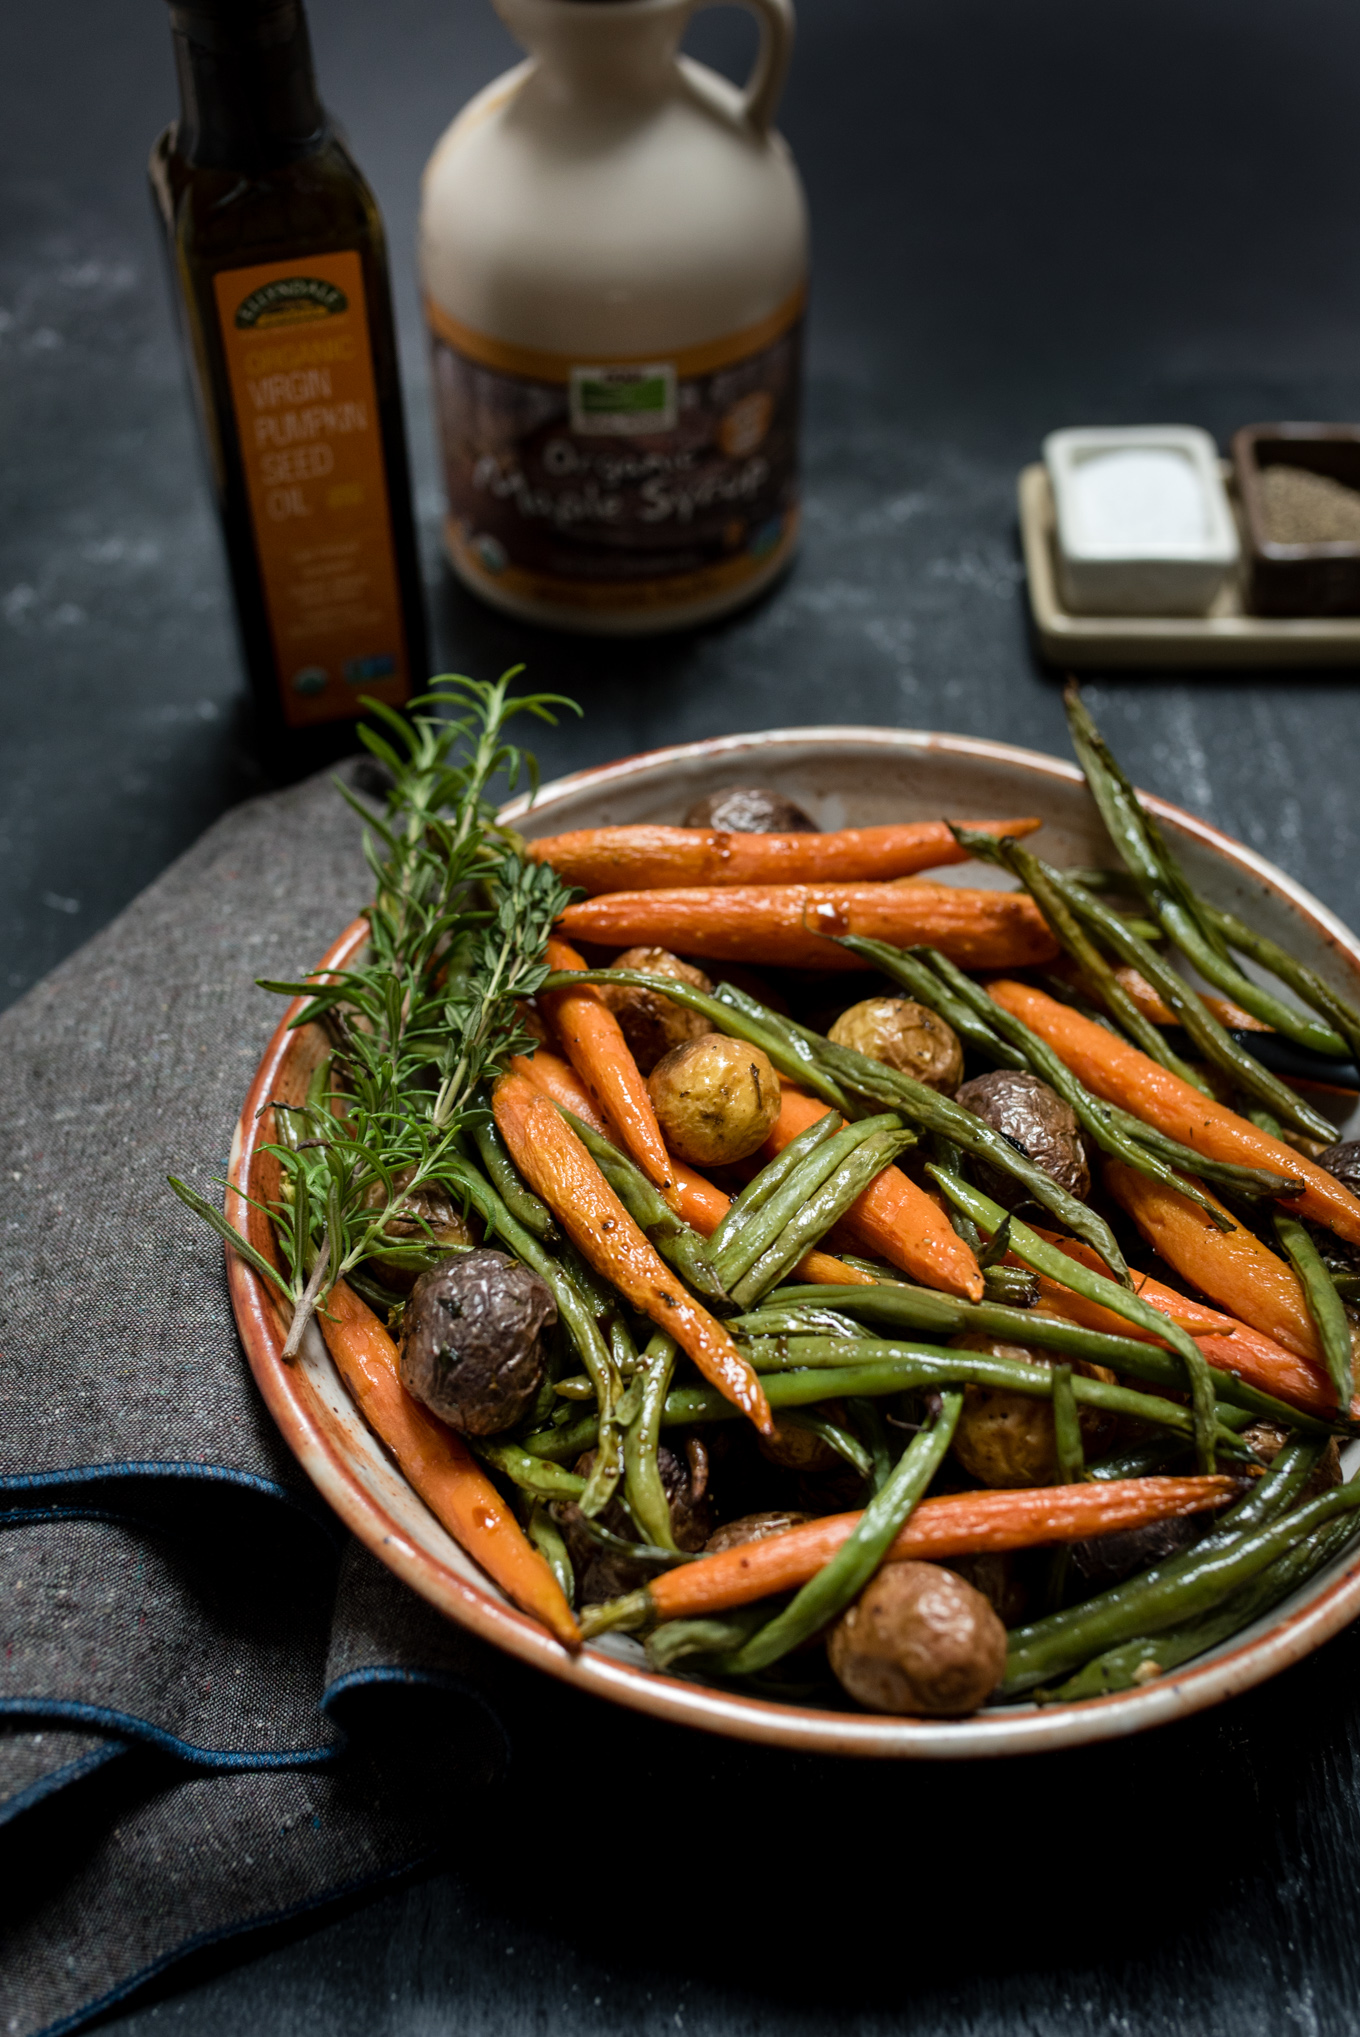 Herb Roasted Potatoes and Vegetables with Pumpkin Seed Vinaigrette, easy to make and naturally gluten free, great to serve along with roast beef, lamb, fish or to add to your vegetarian menu.